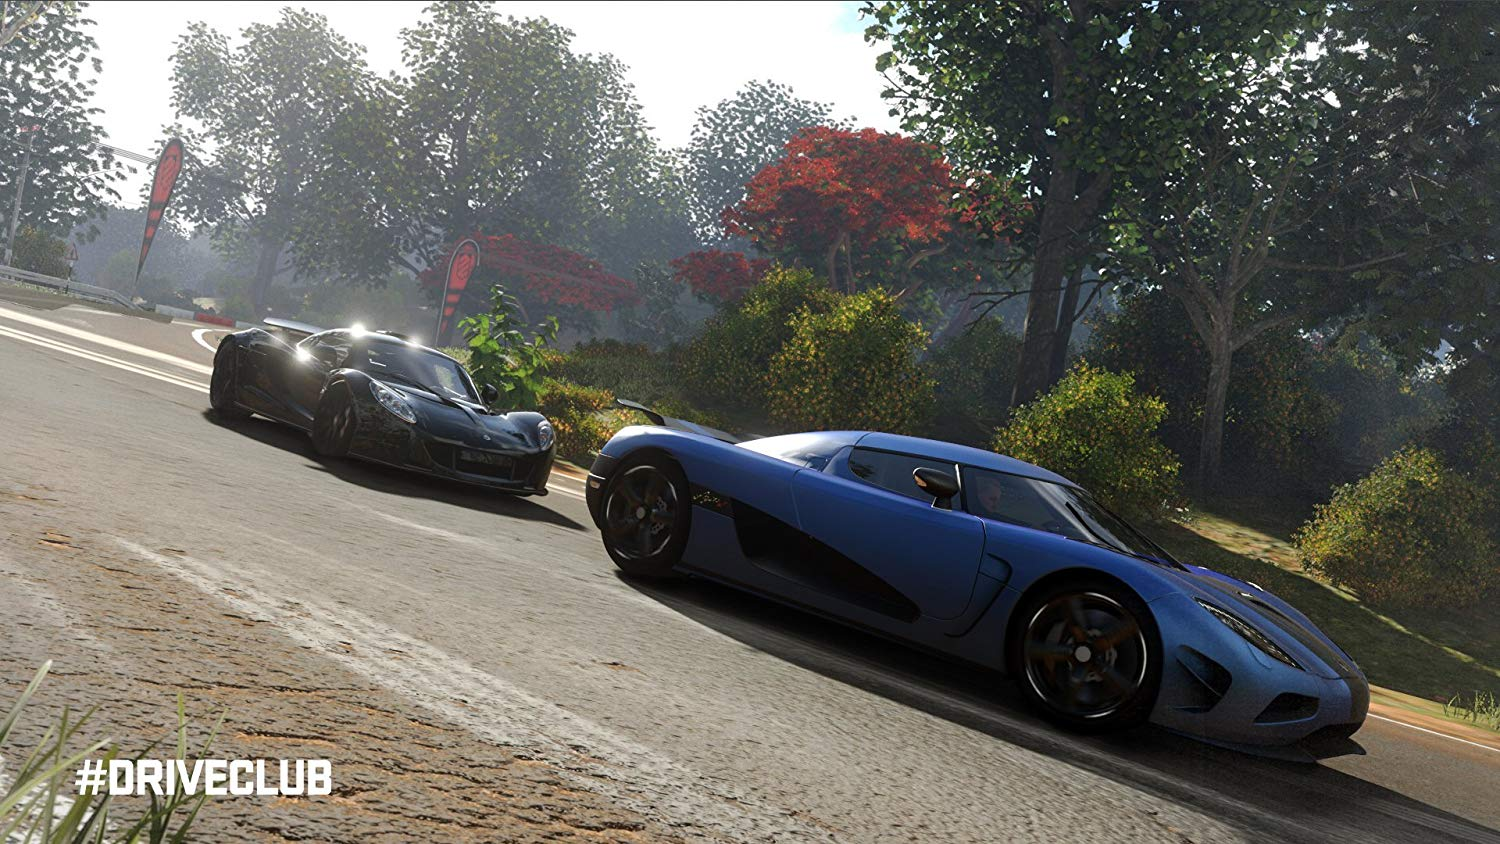 DriveClub Xbox One Version Full Game Free Download